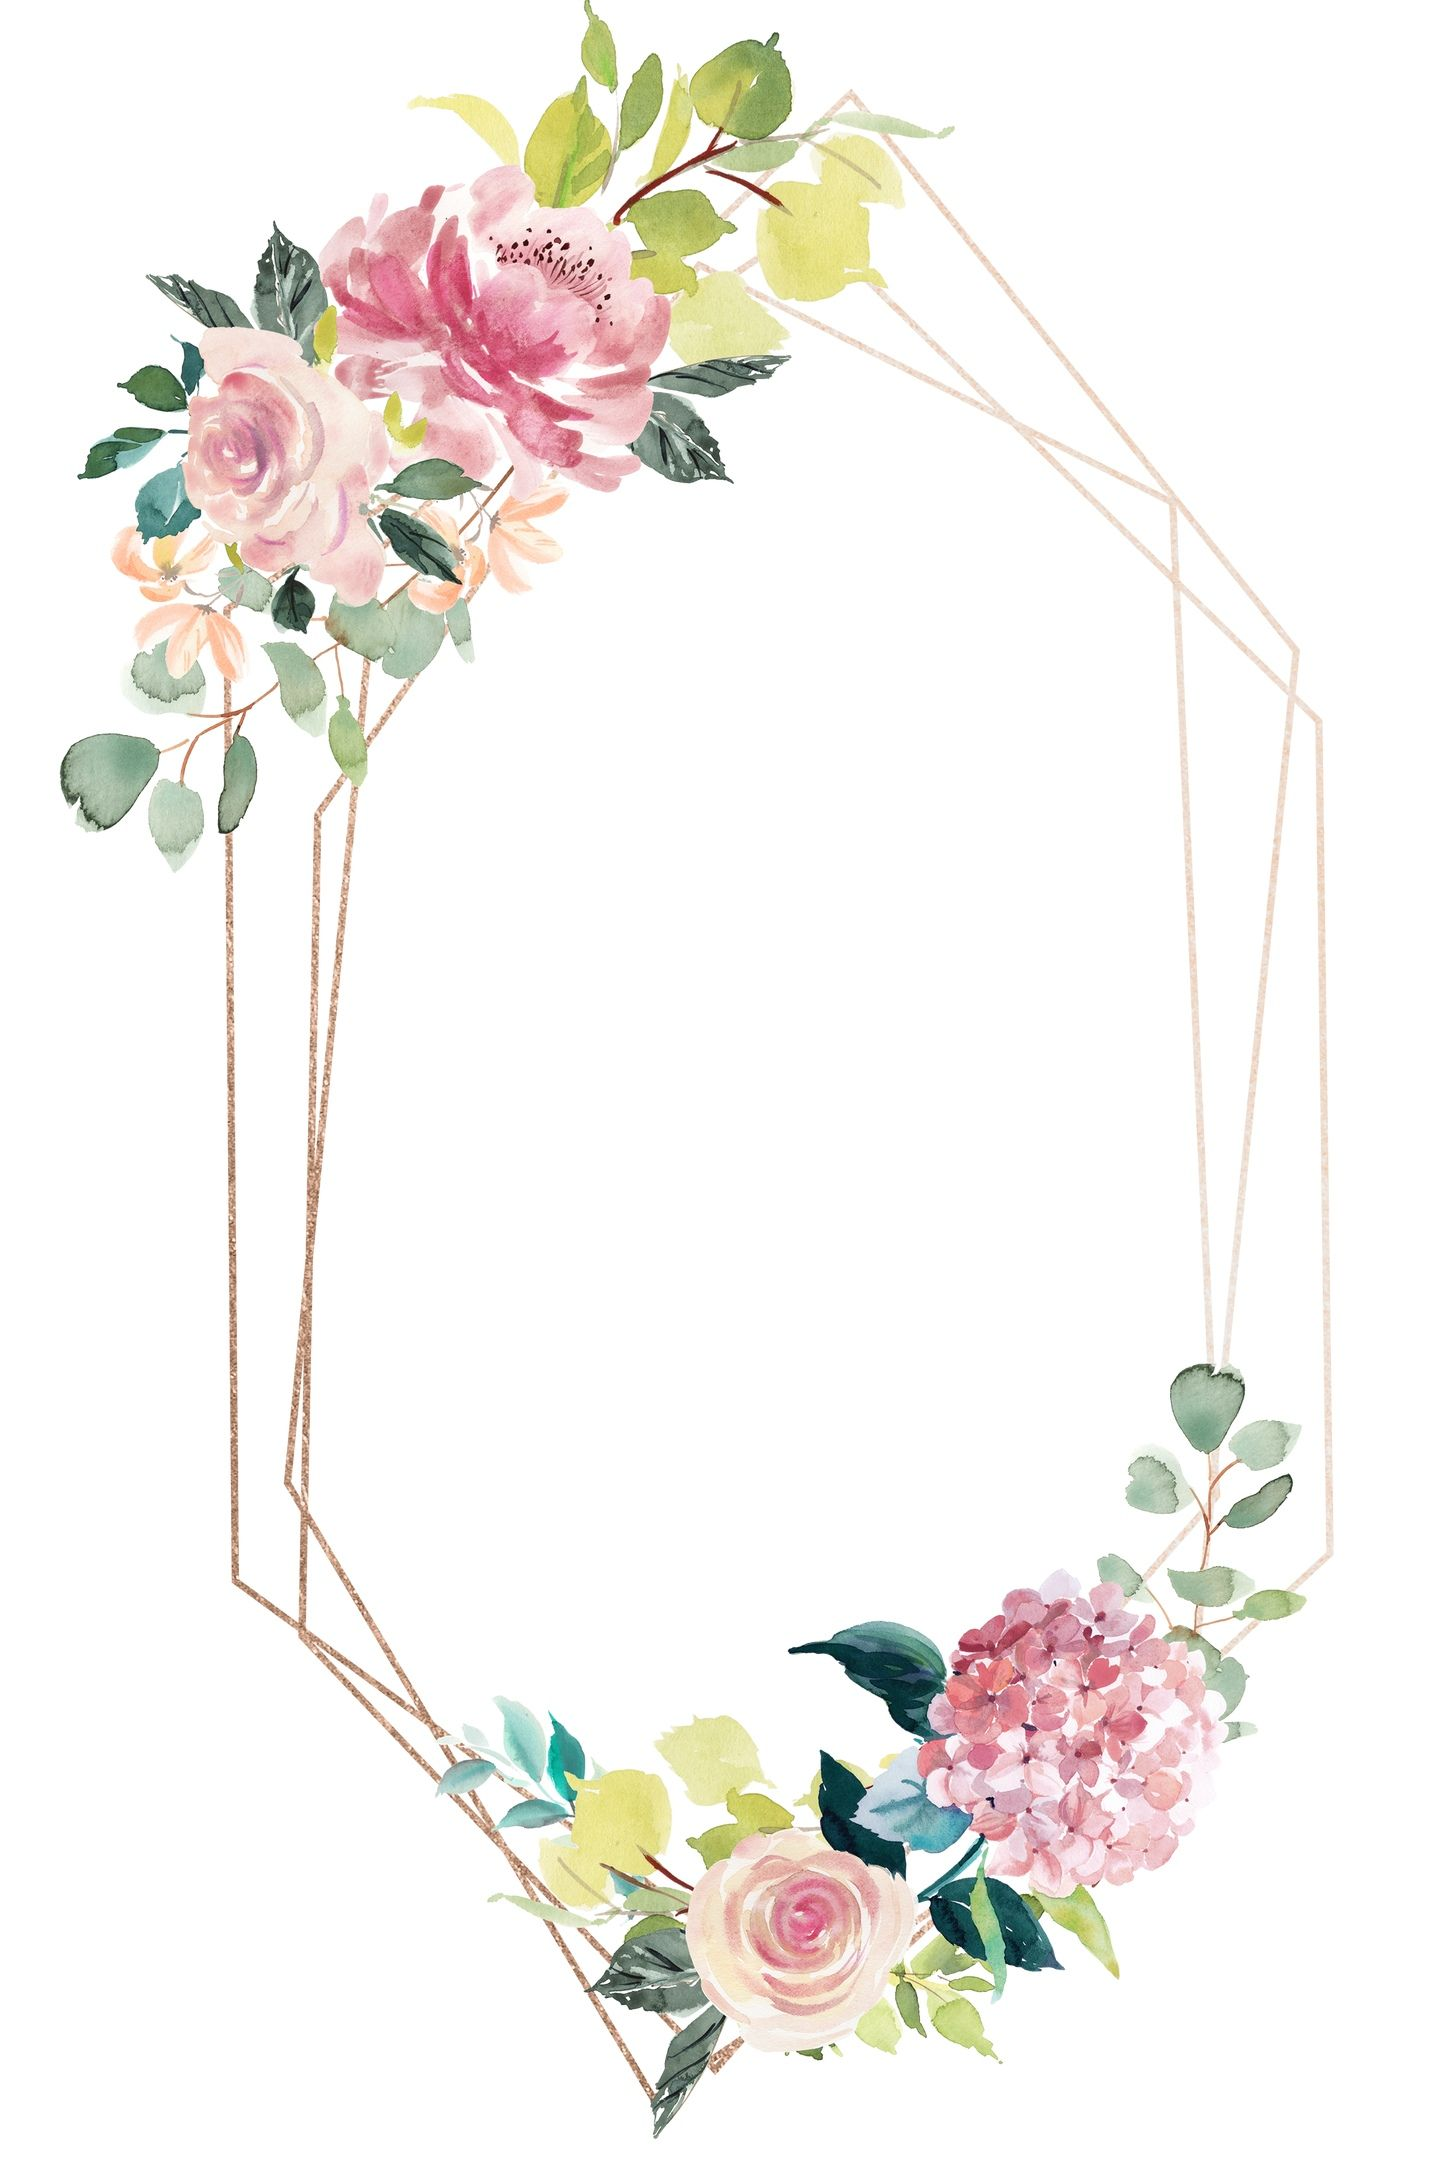 Skrapbuking Vk Floral Border Design Flower Frame Floral Background